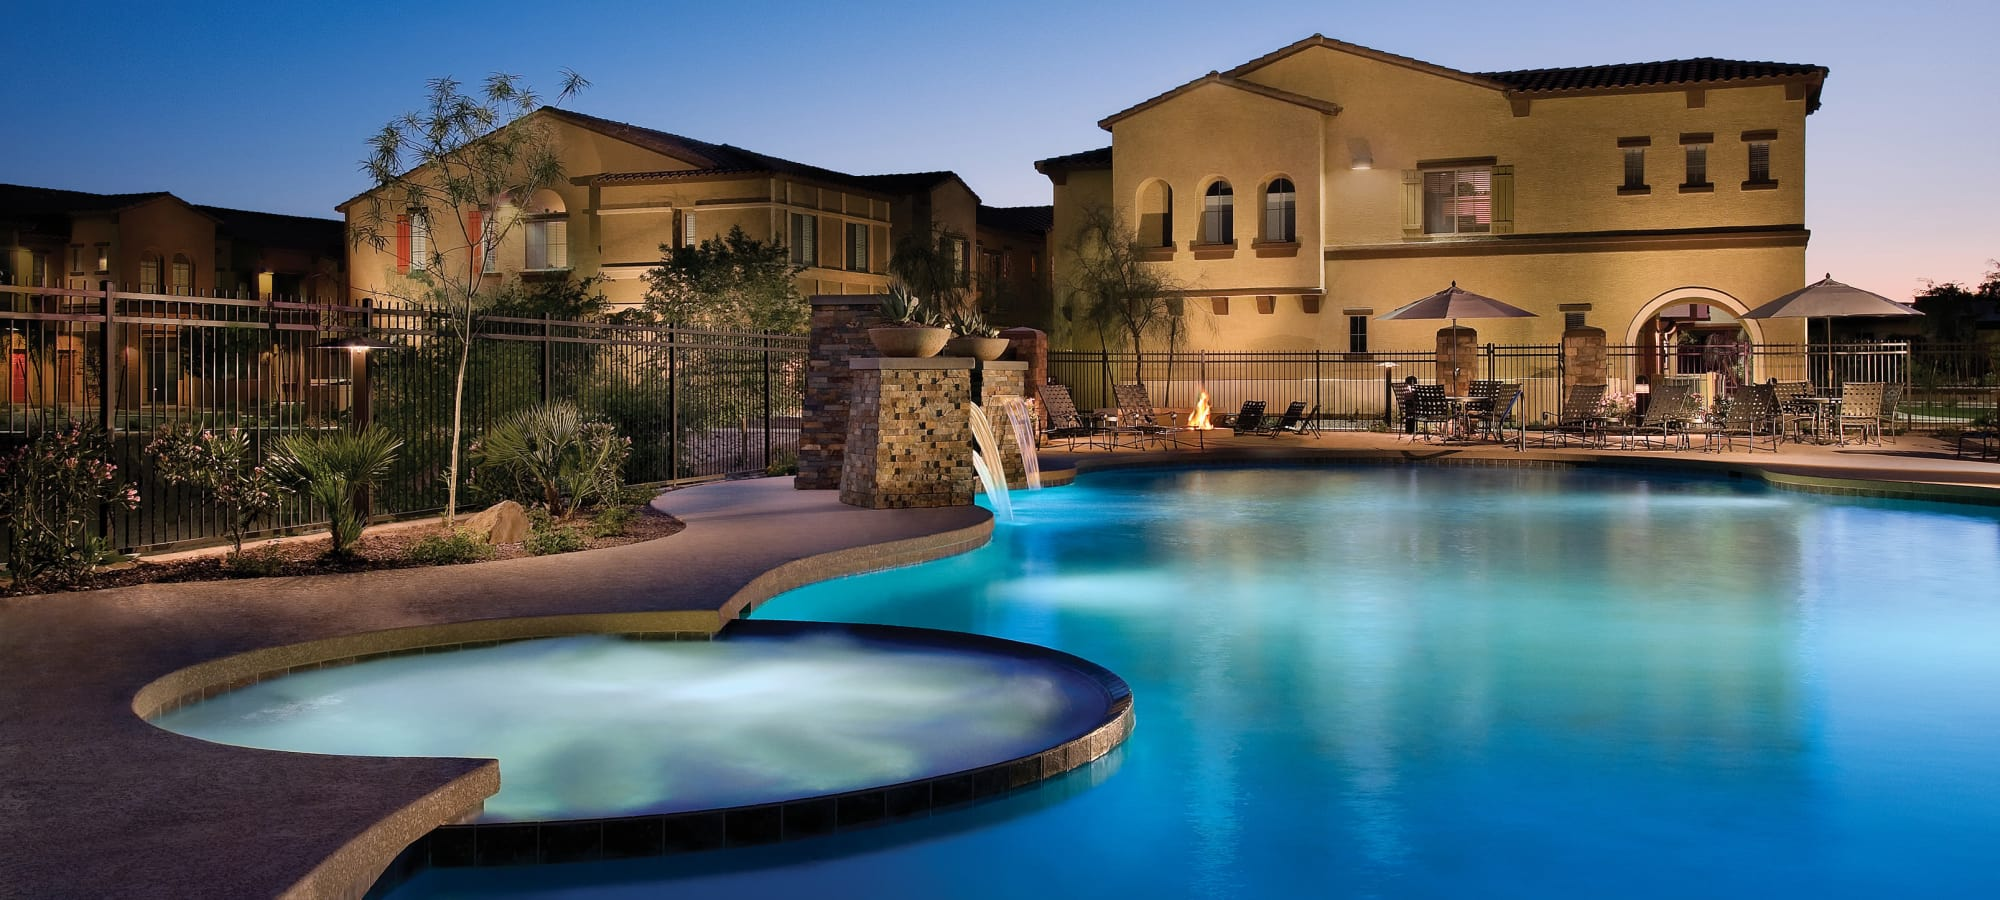 Community swimming pool at Ravenwood Heights in Tempe, Arizona